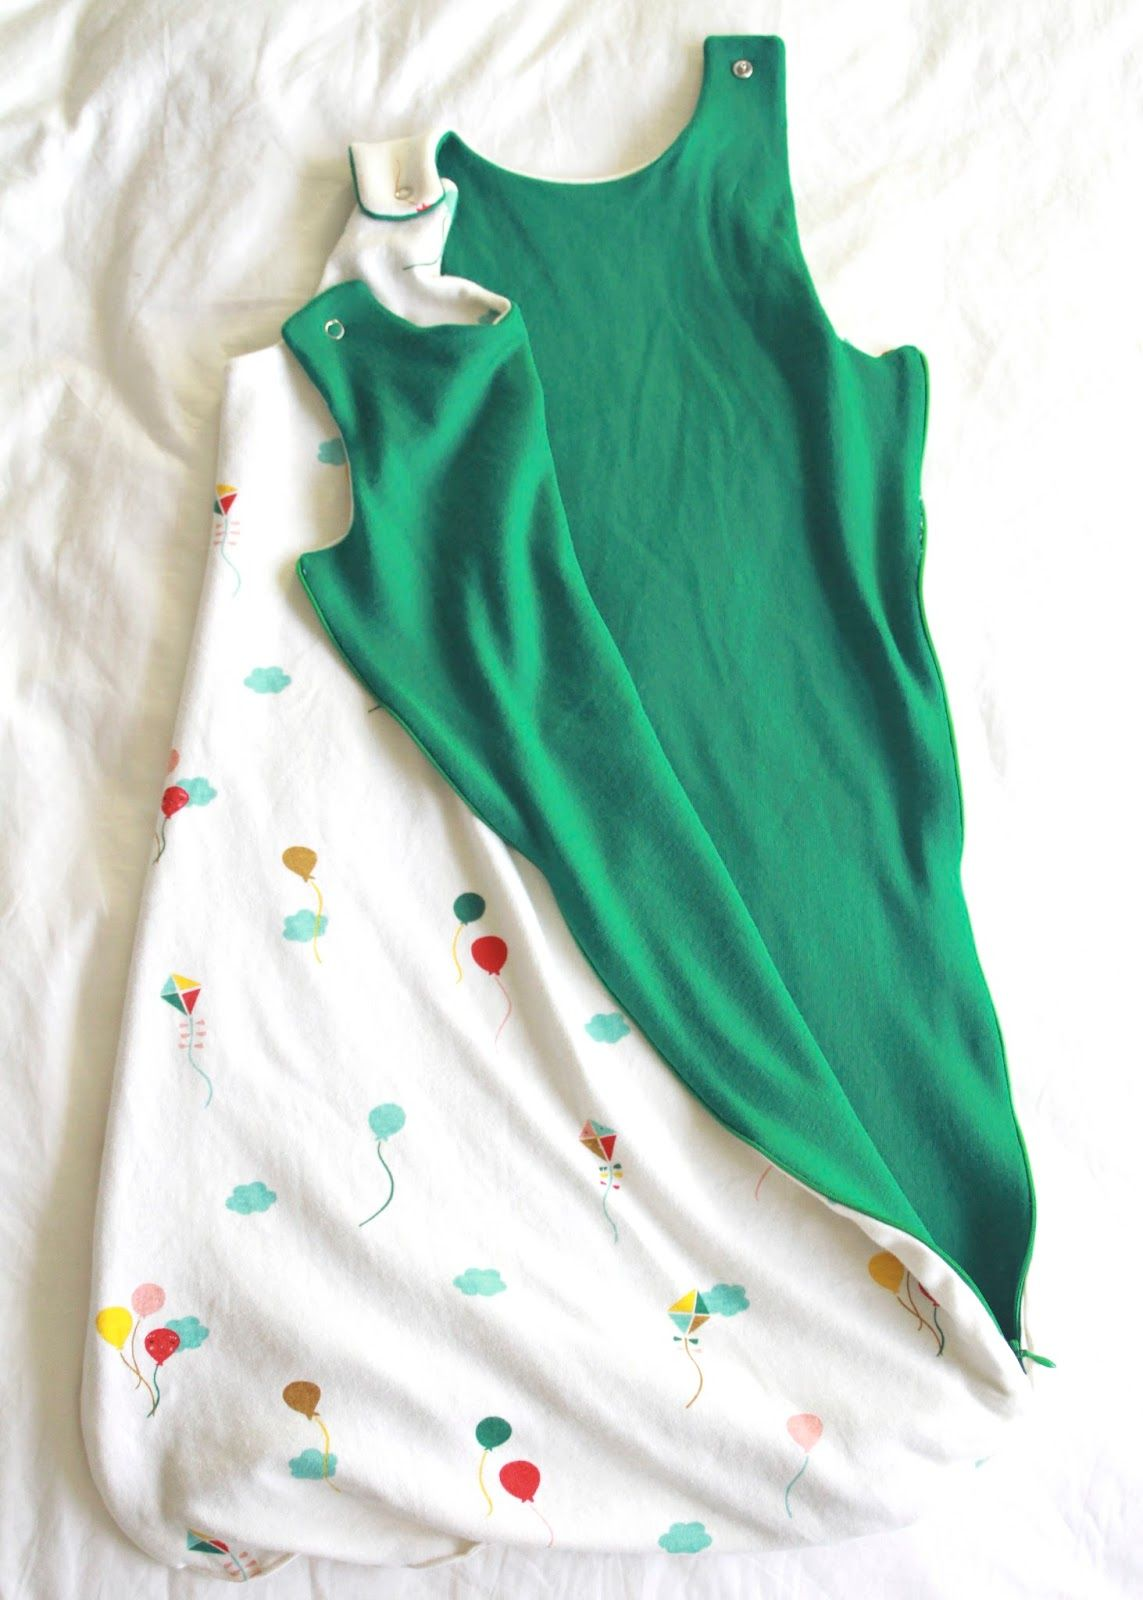 Diy Merino Wool Infant Sleep Sack From The Lua Sleep Sack